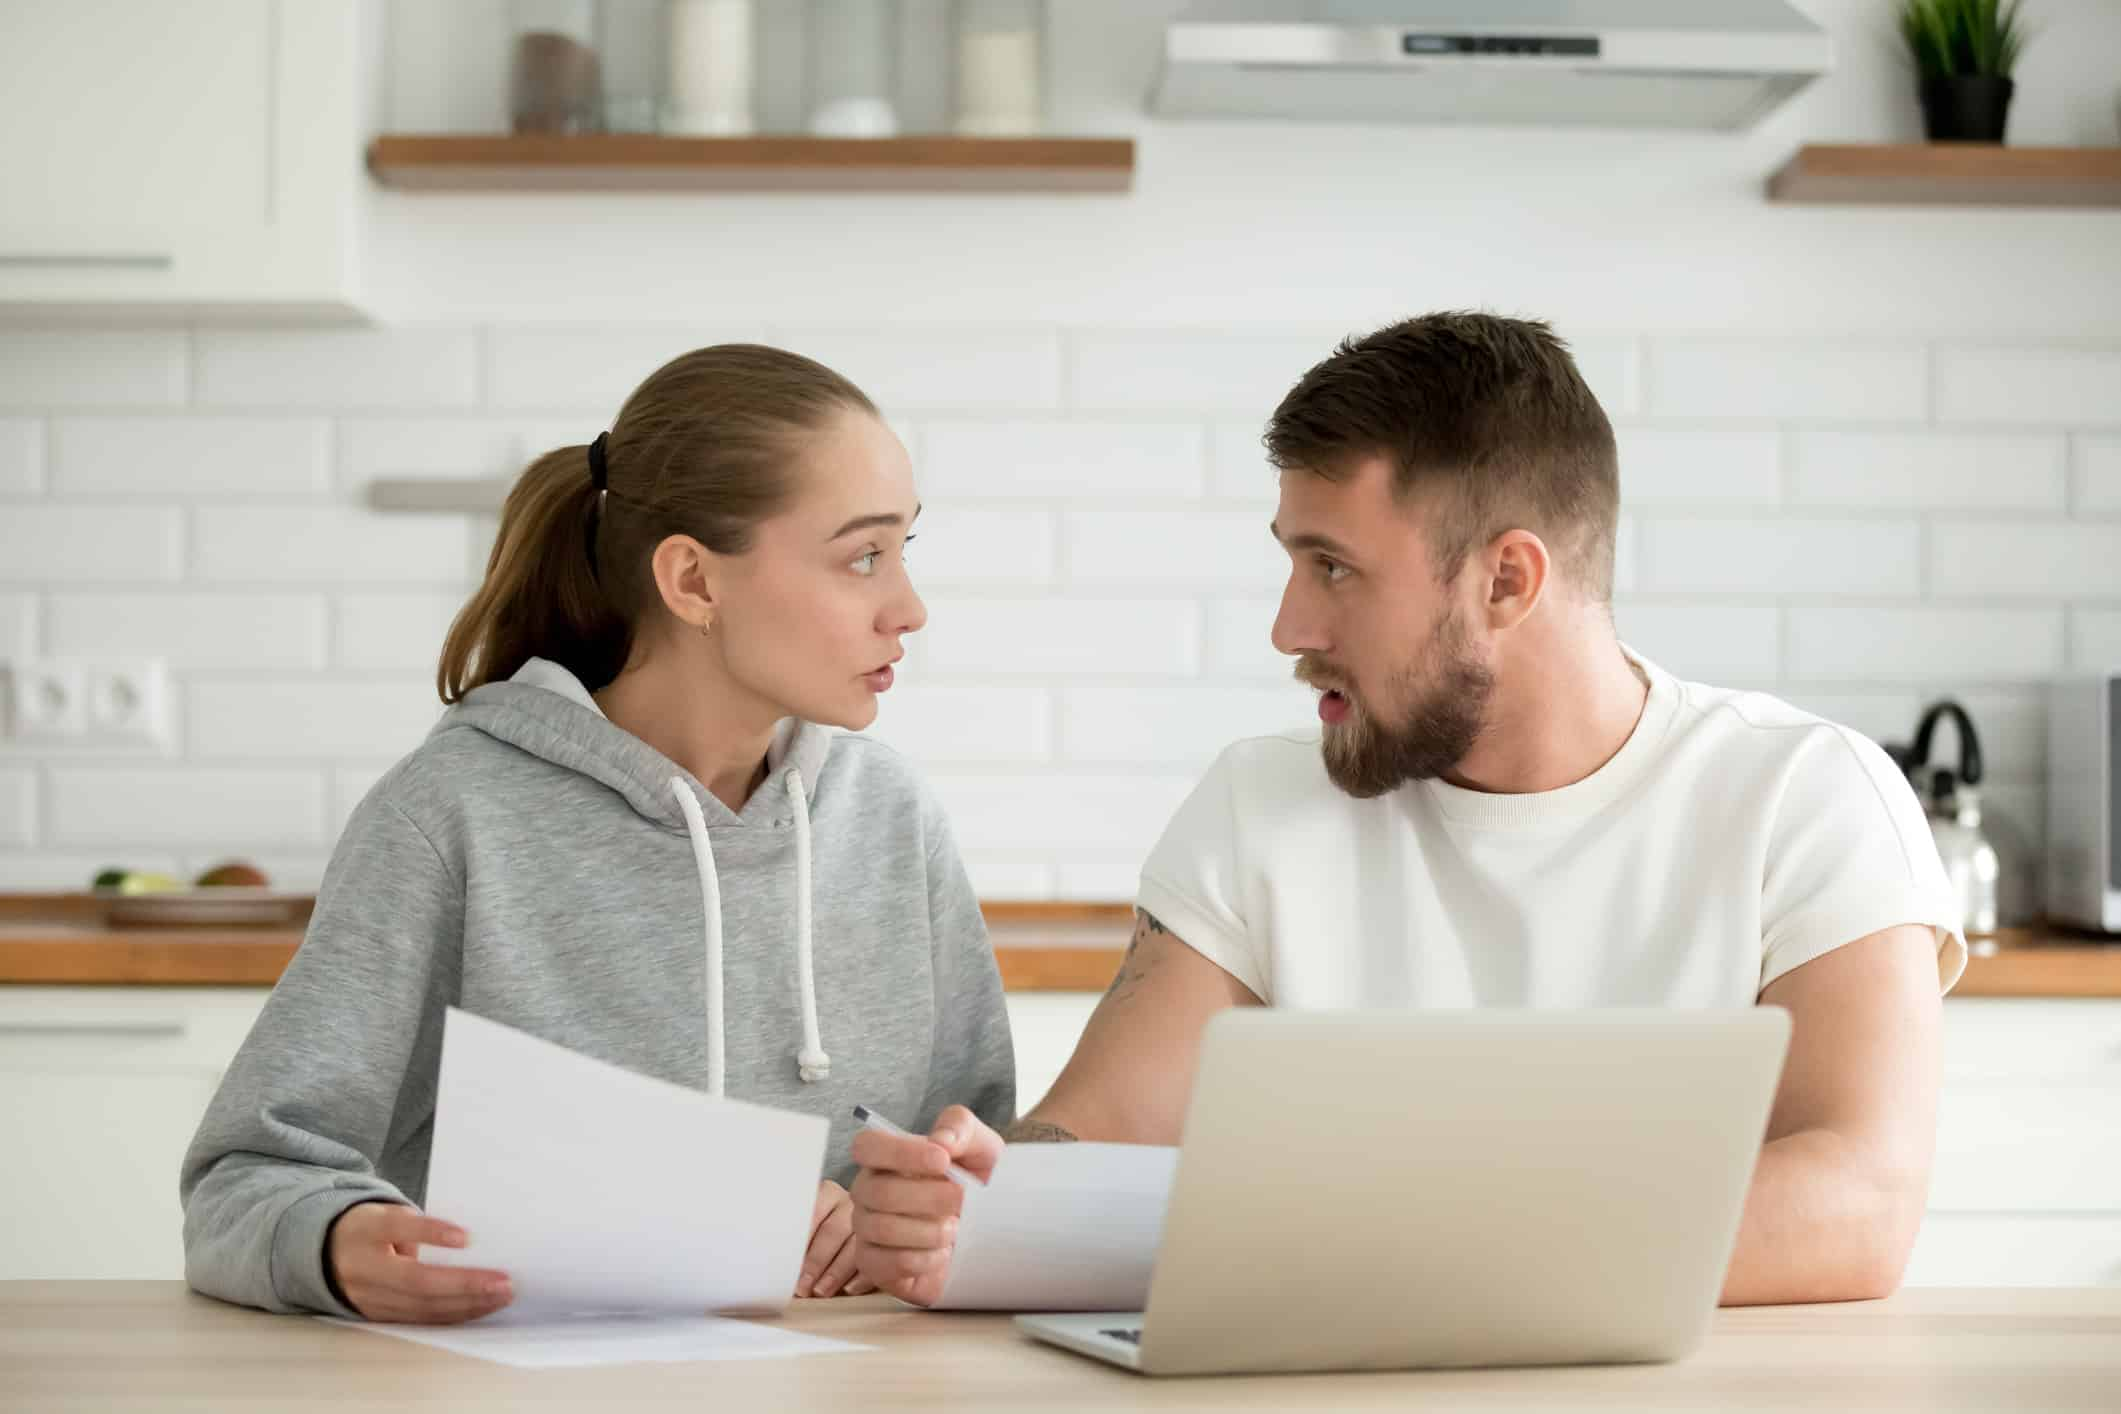 Young unhappy couple arguing about money bills documents at home kitchen.